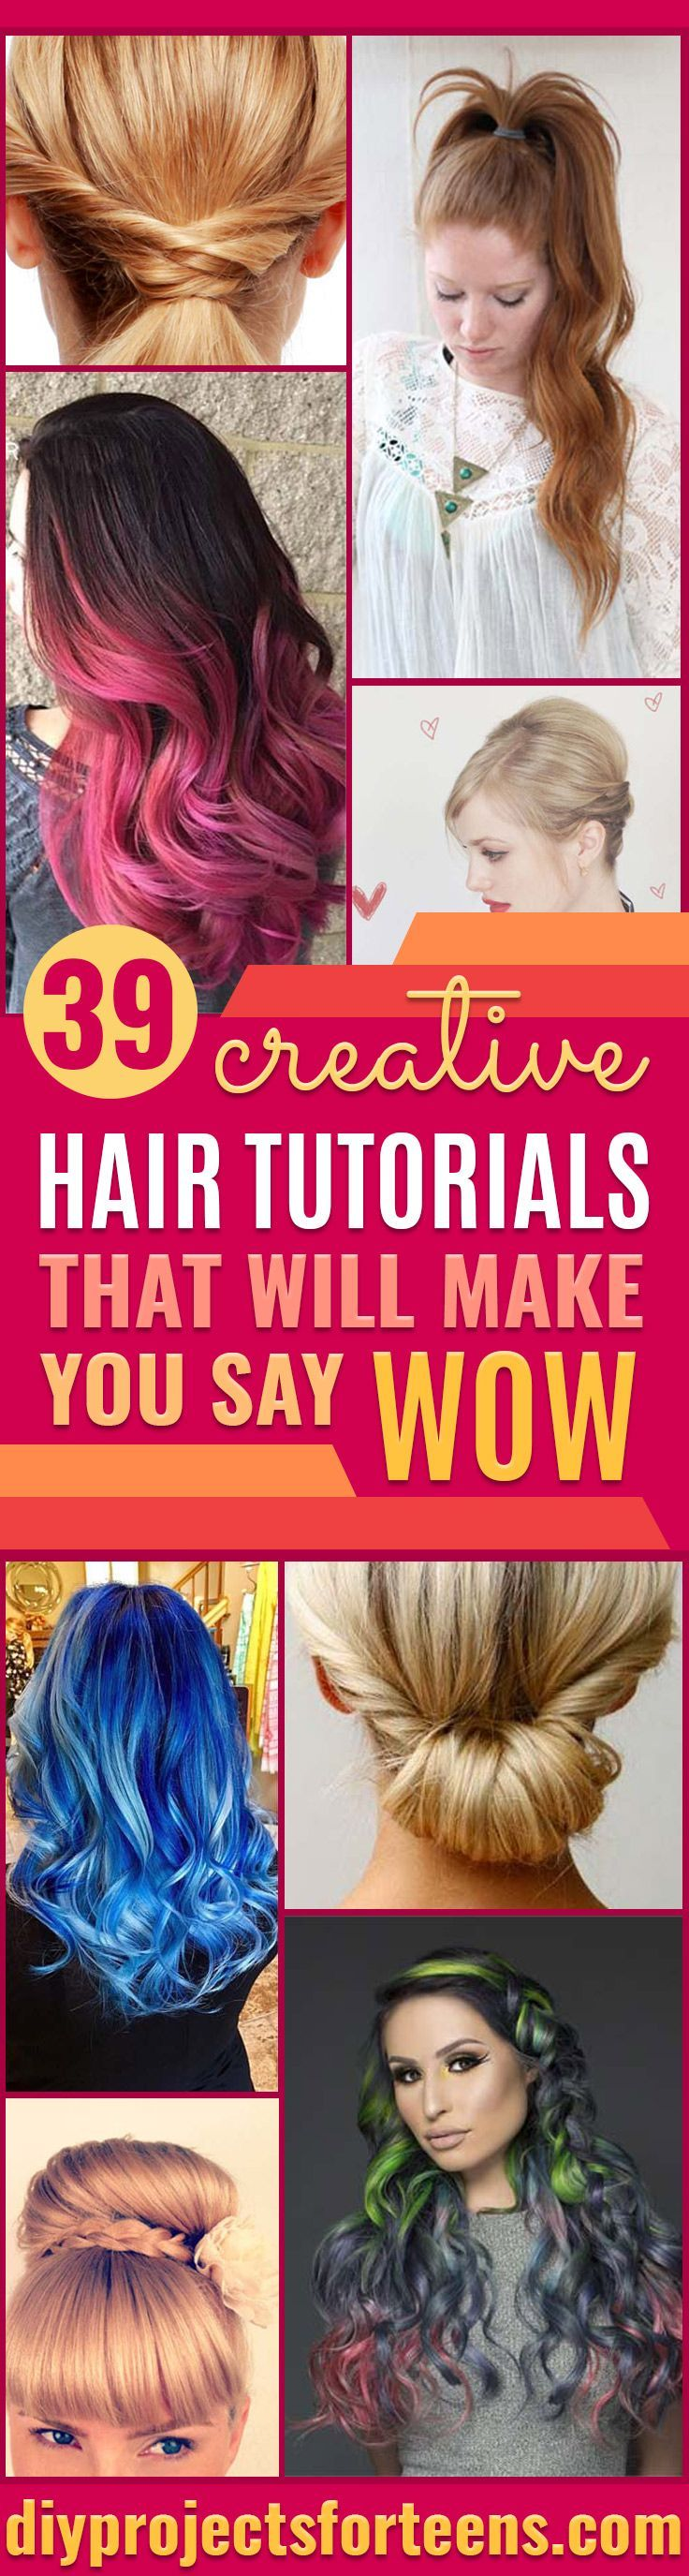 "39 Creative Hair Tutorials That Will Make You Say ""WOW!"""